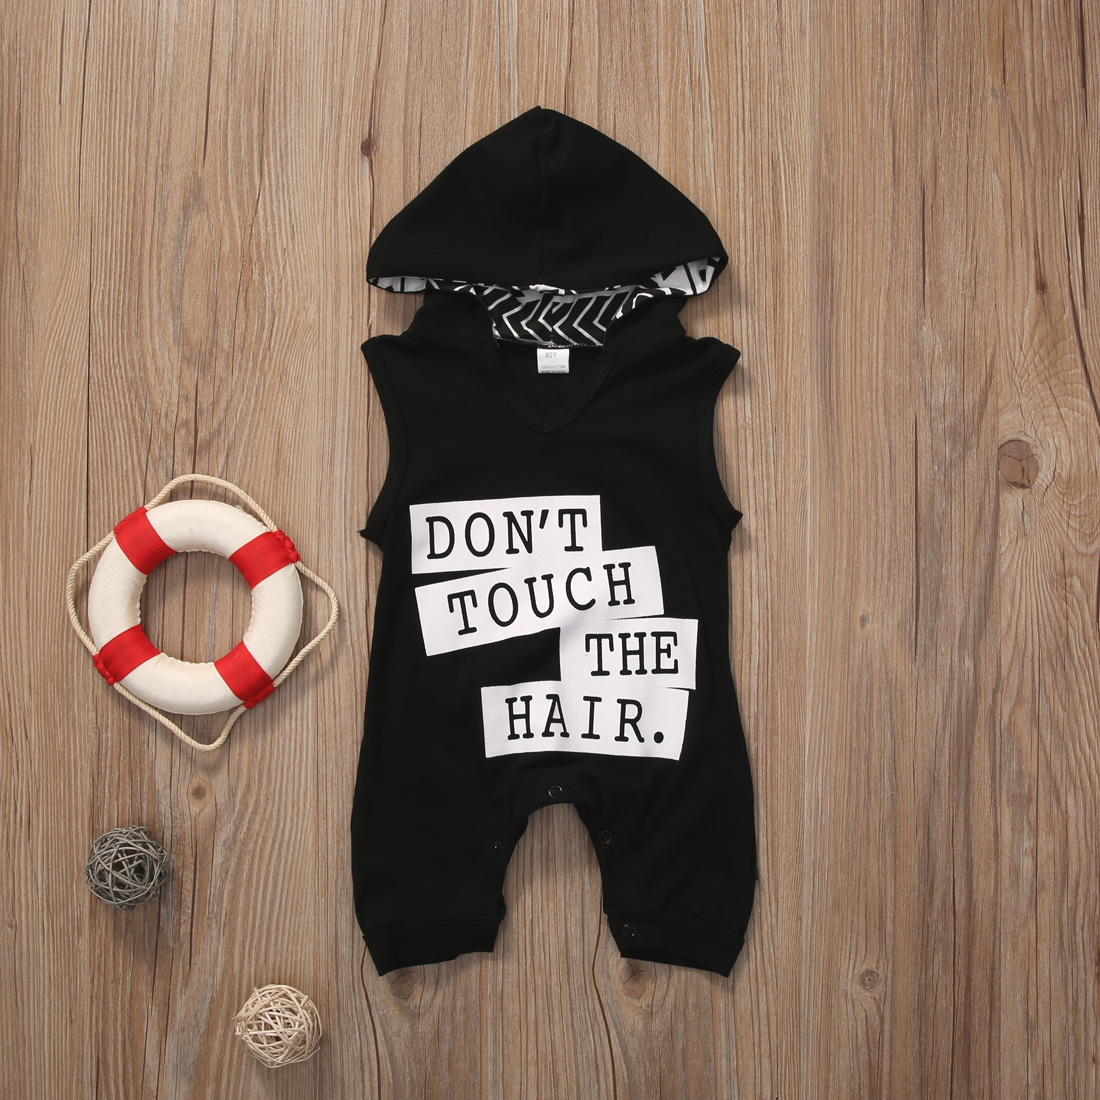 2017 Cute Newborn Infant Baby Boys Clothes Hooded Cotton Romper Jumpsuit Outfits puseky 2017 infant romper baby boys girls jumpsuit newborn bebe clothing hooded toddler baby clothes cute panda romper costumes